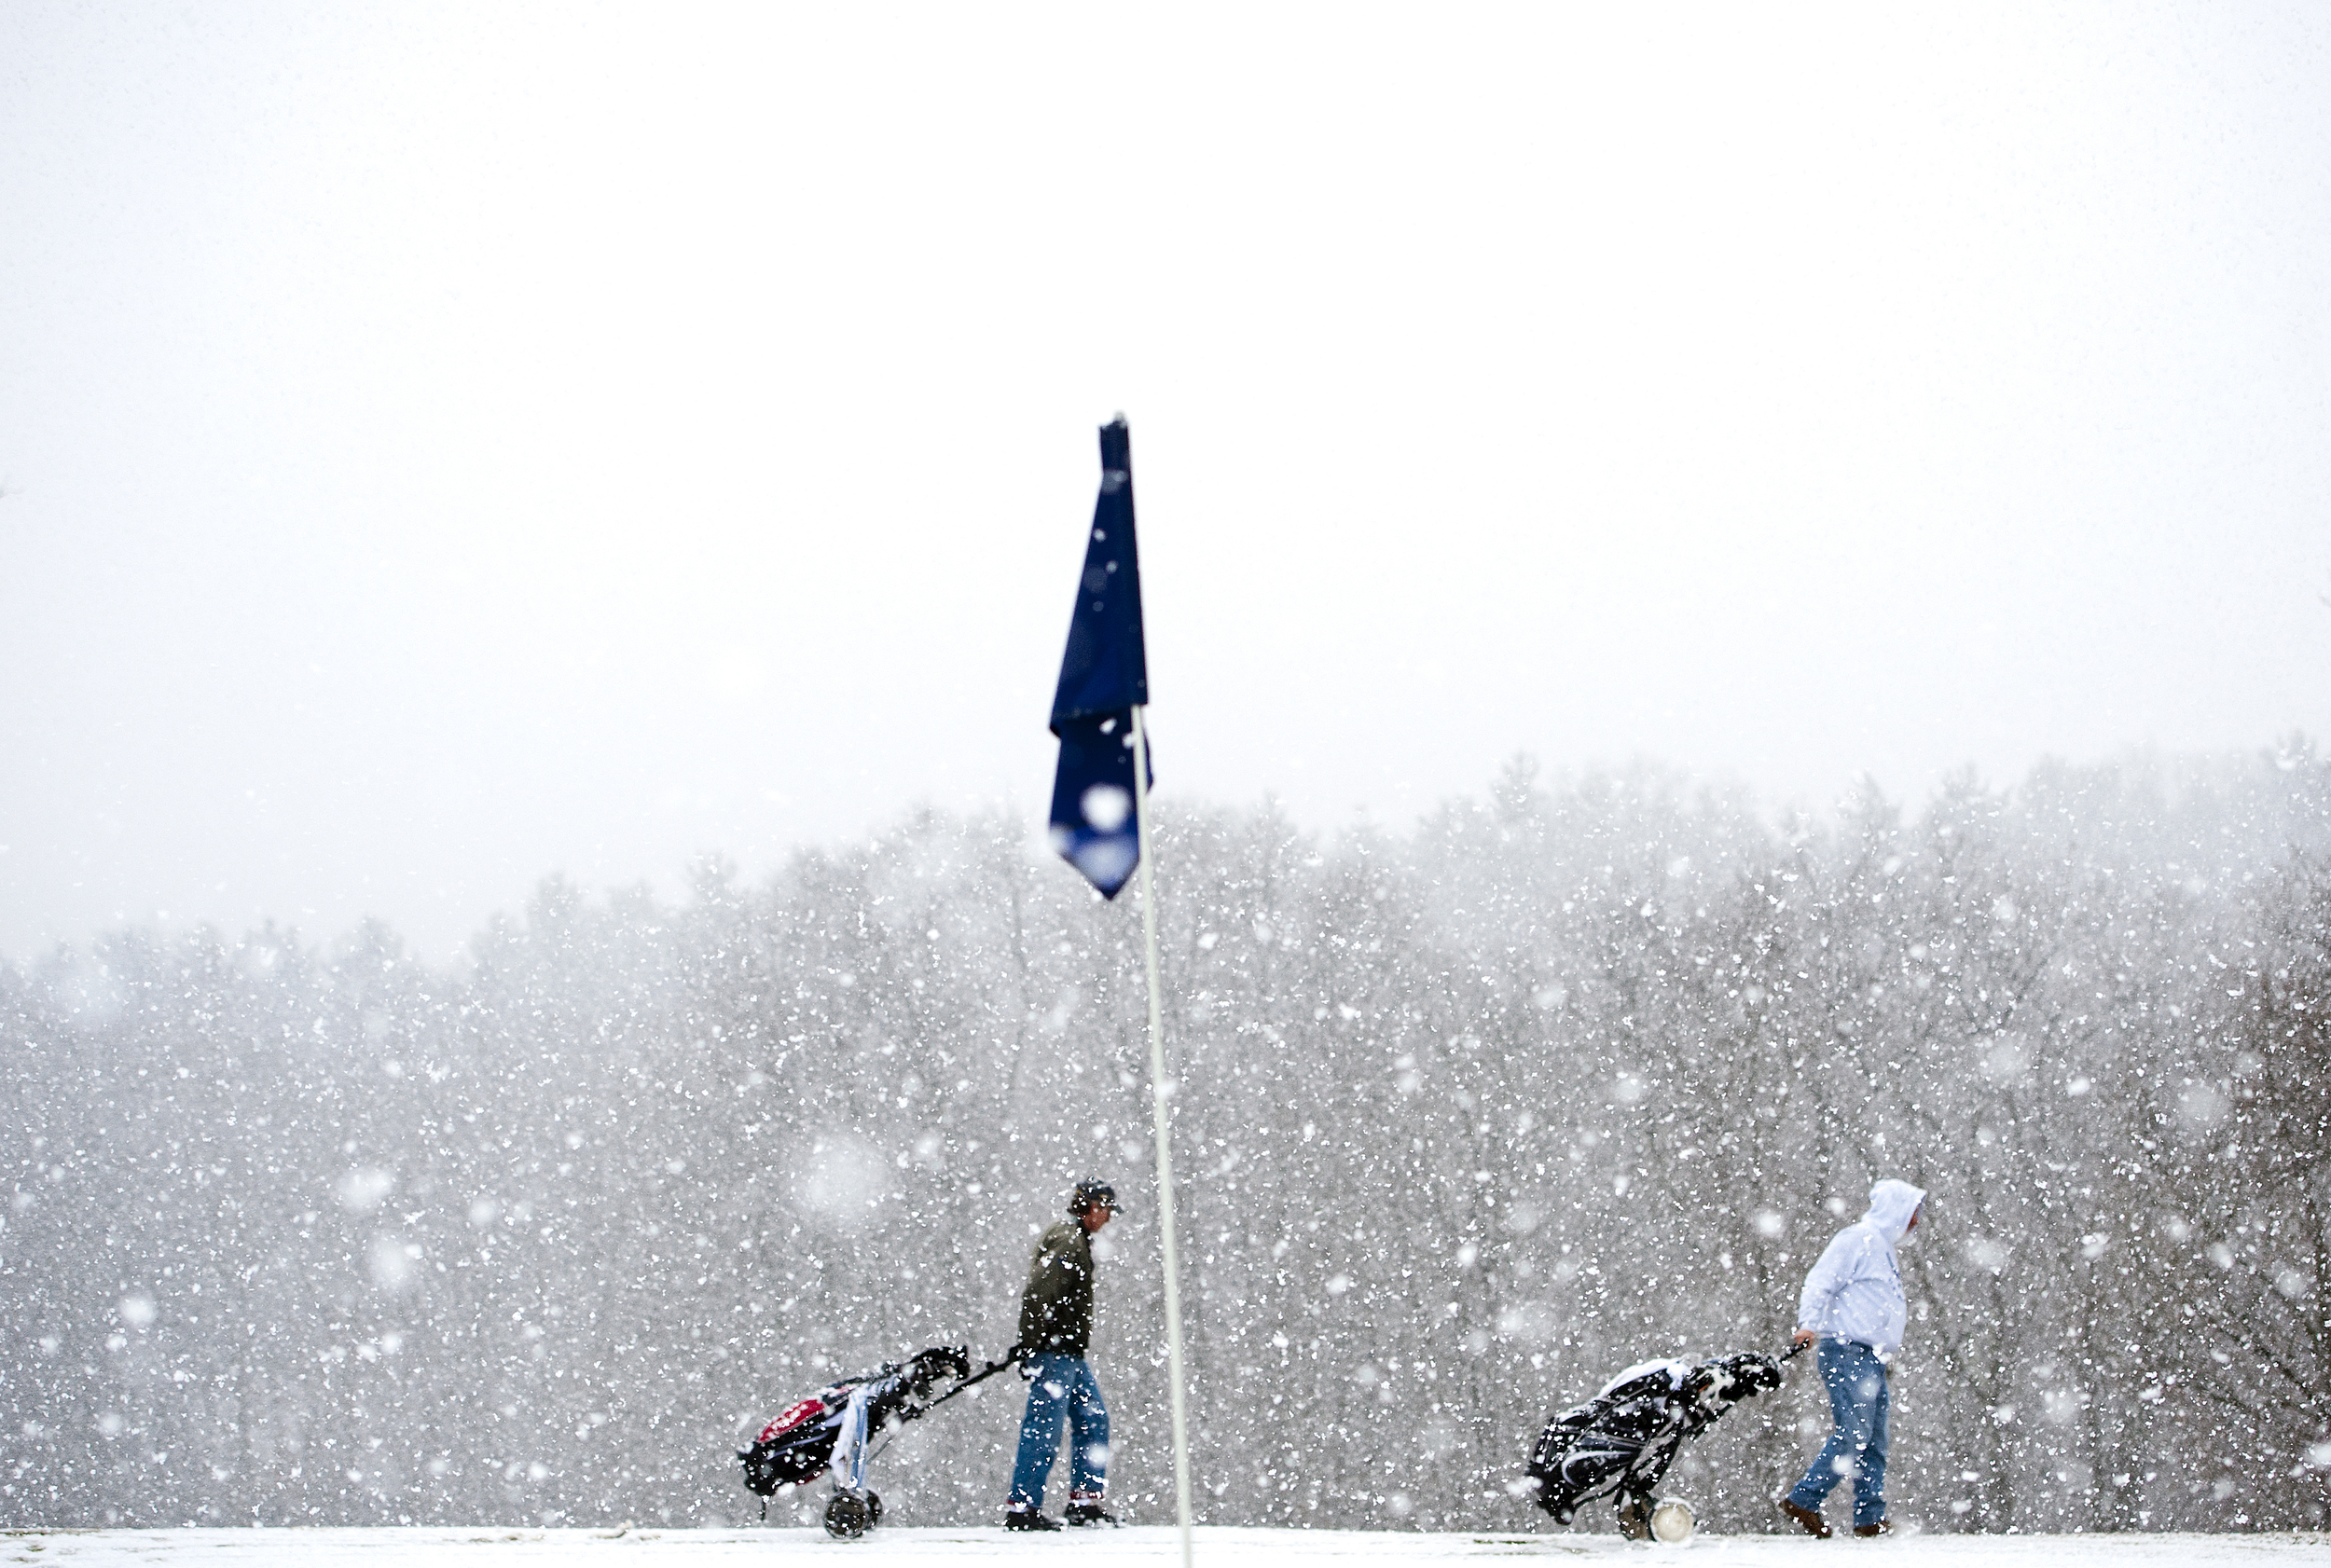 Gene Jackson (left) of Level Green, 72, and Ray Hunsberger of Wilkins Township, 73, roll their golf carts around a snowy green on Tuesday, Jan. 20, 2015 at Meadowink Golf Course in Murrysville. Jackson, Hunsberger and Bill Jones of Delmont, 72, (not pictured) are Air Force veterans.